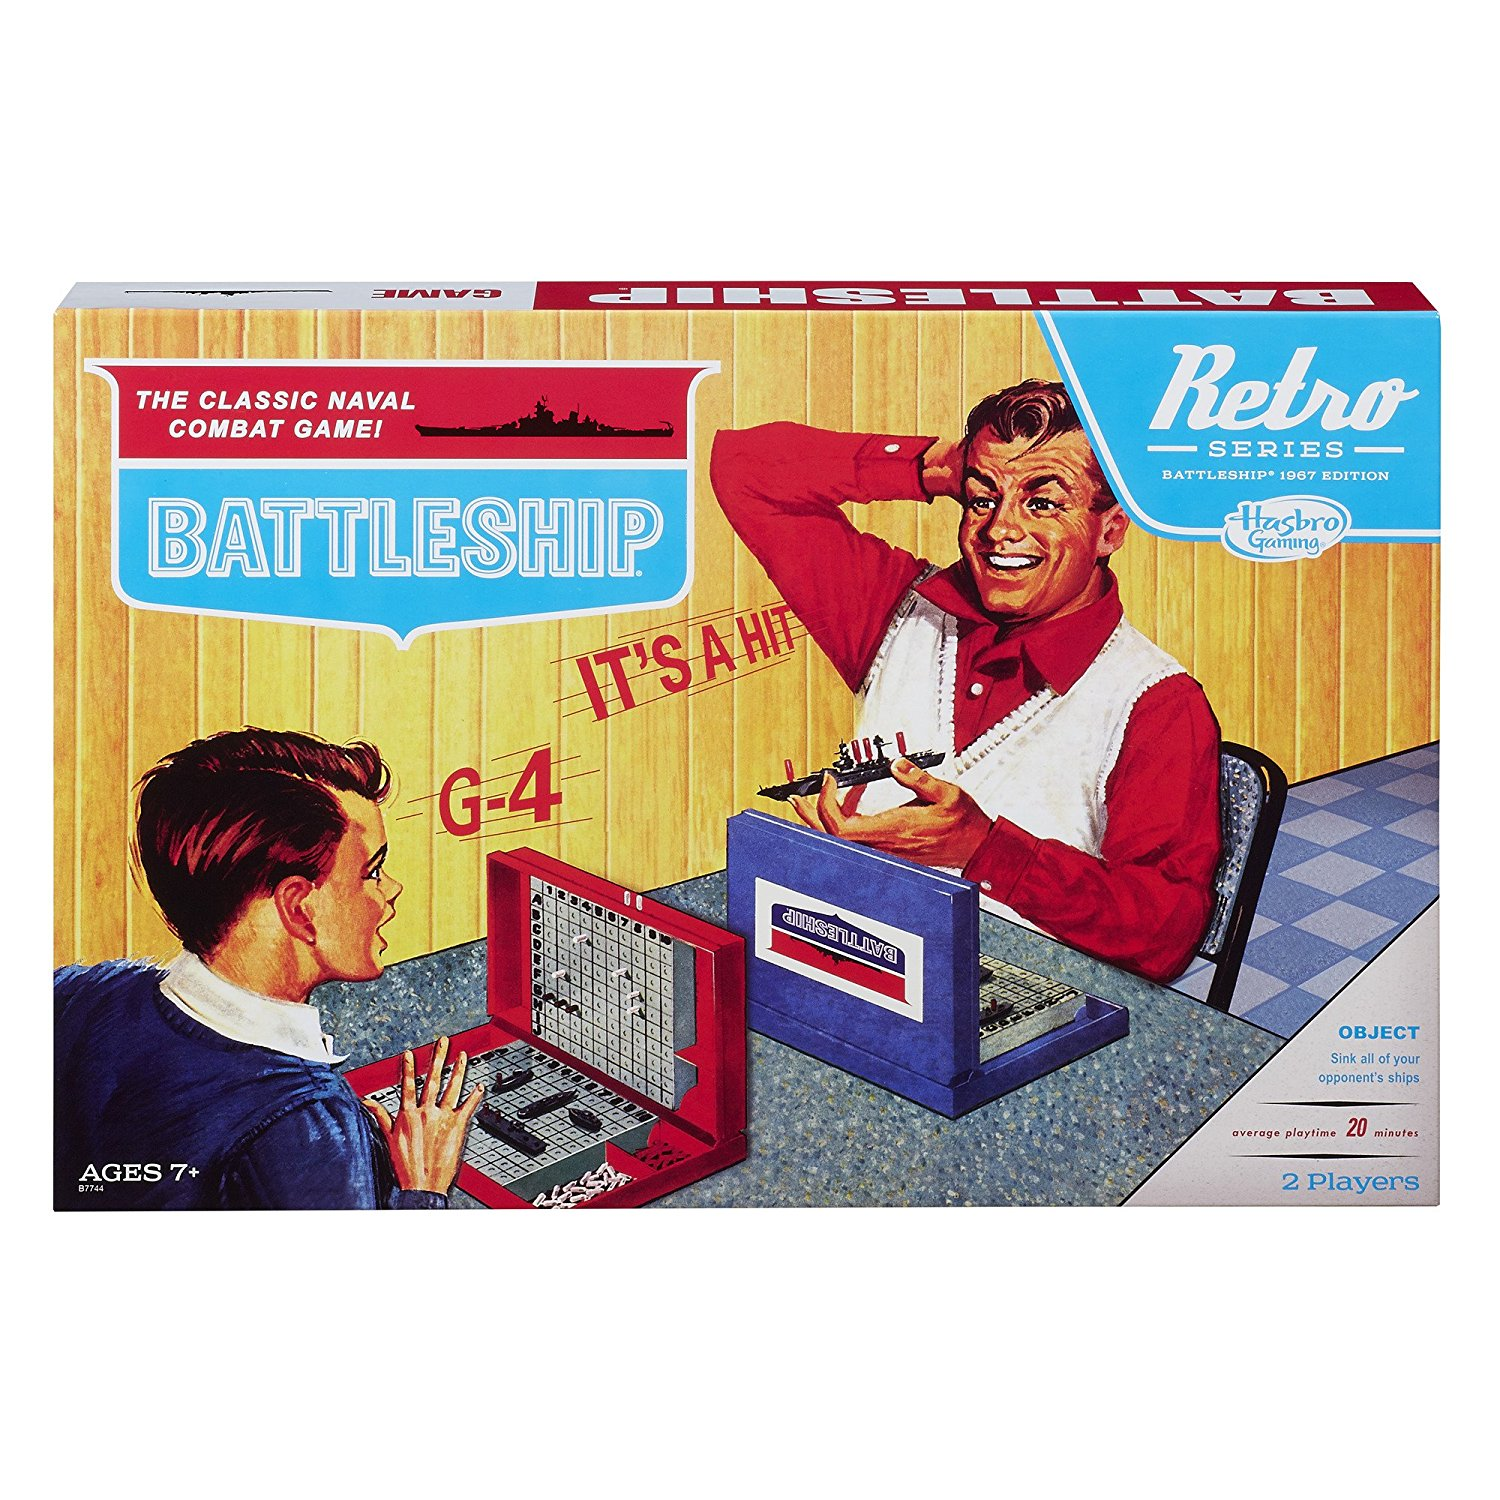 Battleship Game Retro Series 1967 Edition, Retro 1967 edition By Hasbro by